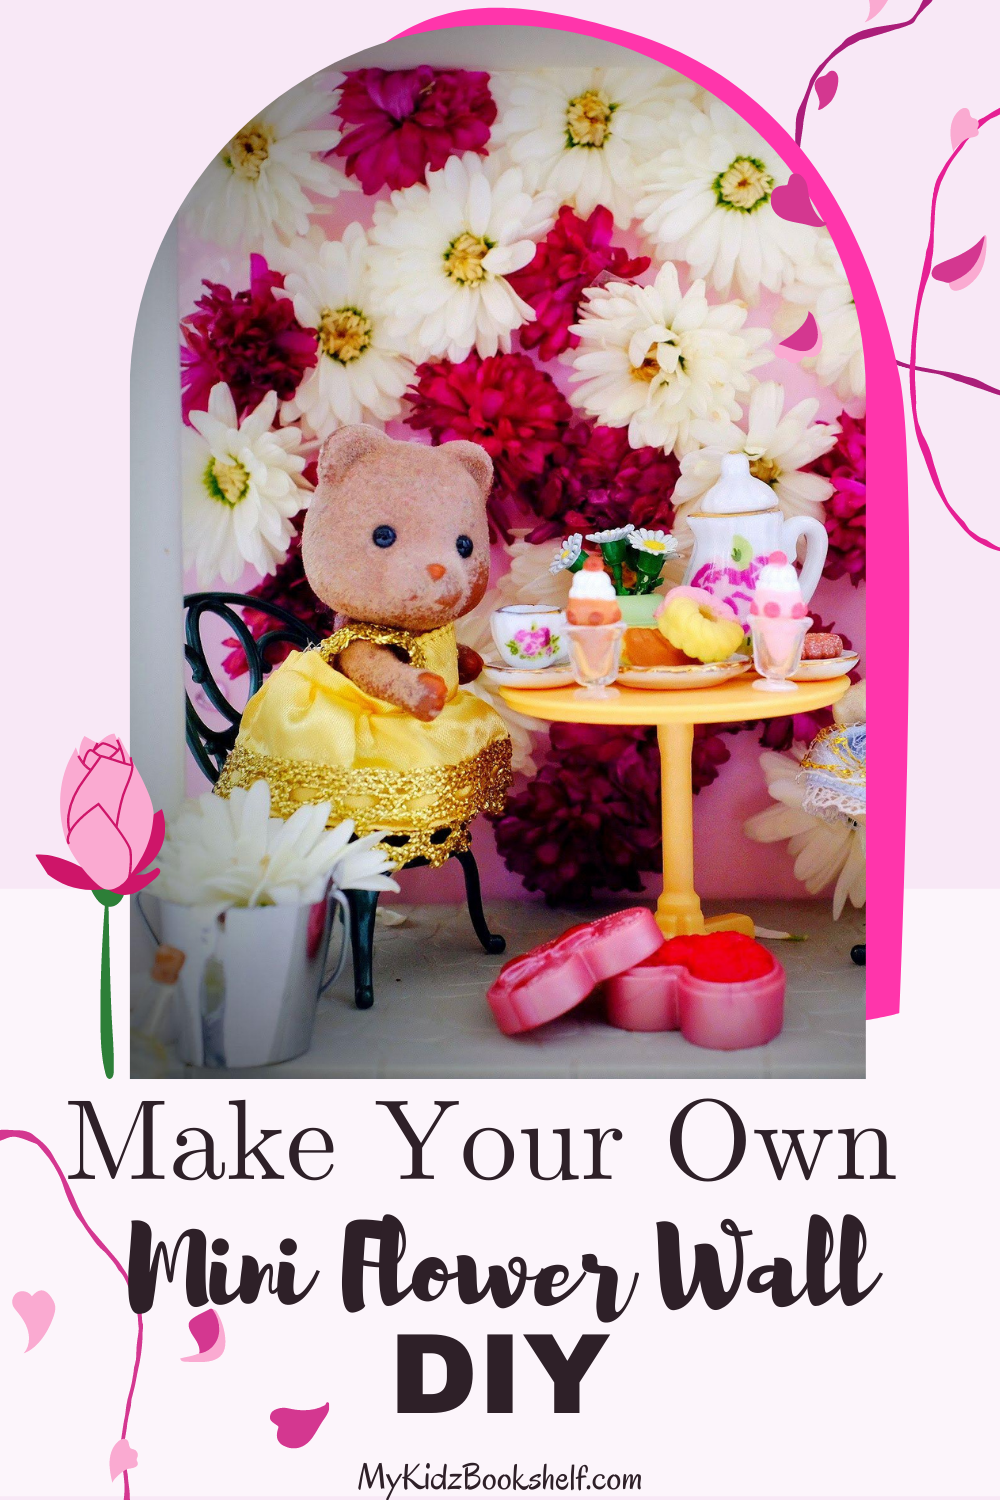 Pinterest pin flower wall with Calico Critters Sylvanian Families sitting and having a tea party in front of flower wall